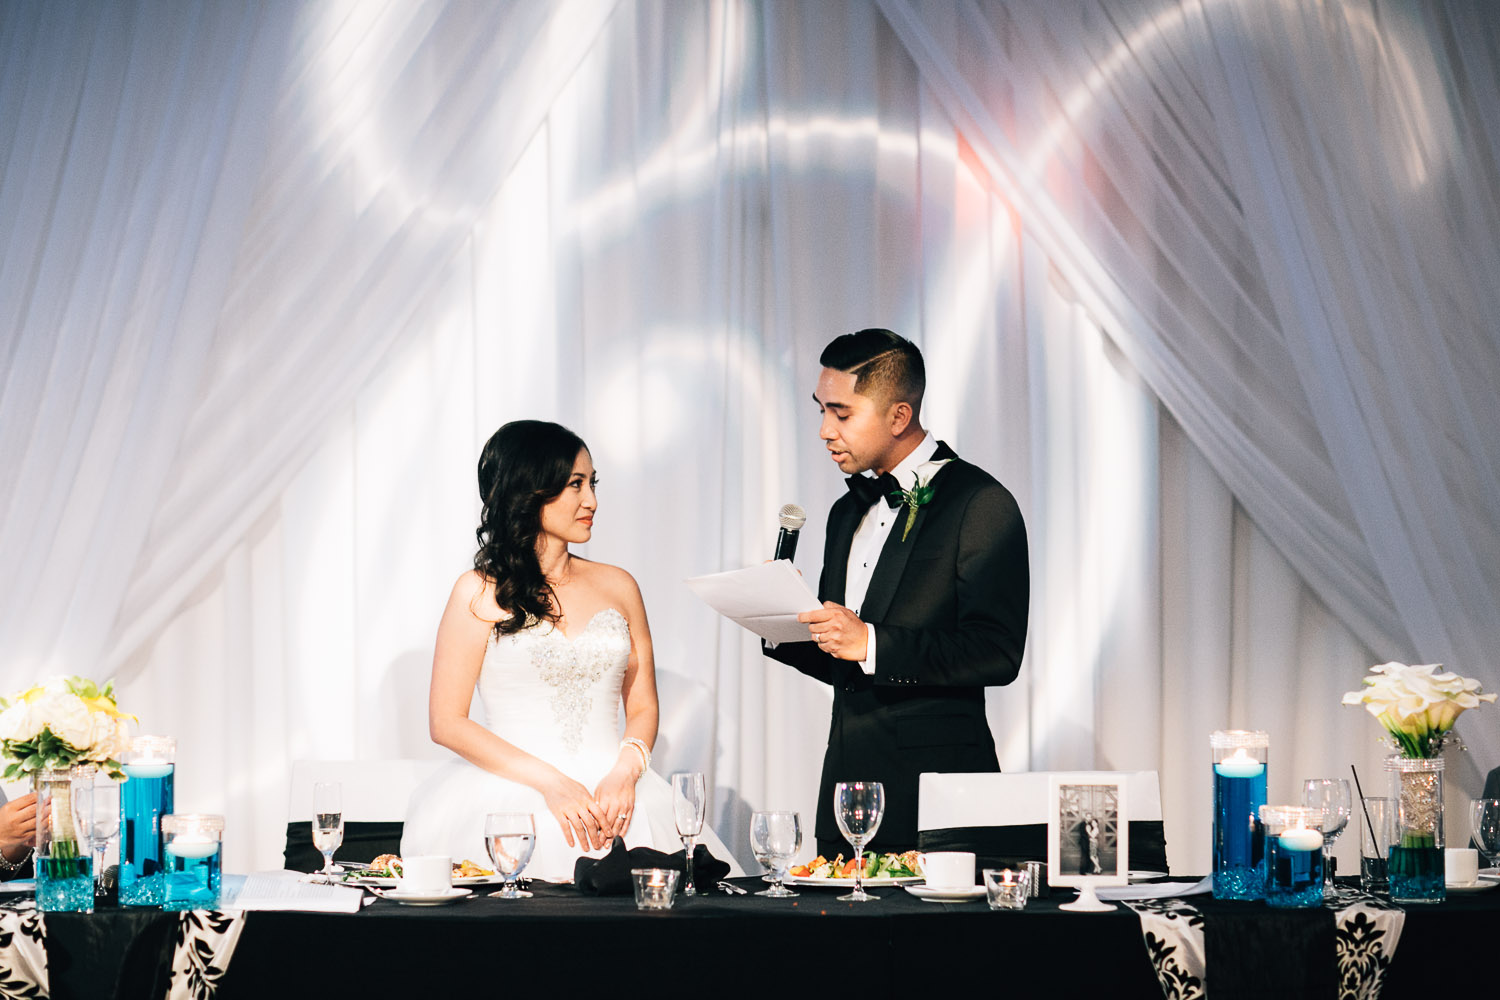 richmond wedding photographers westin wall centre hotel vancouver airport noyo creative